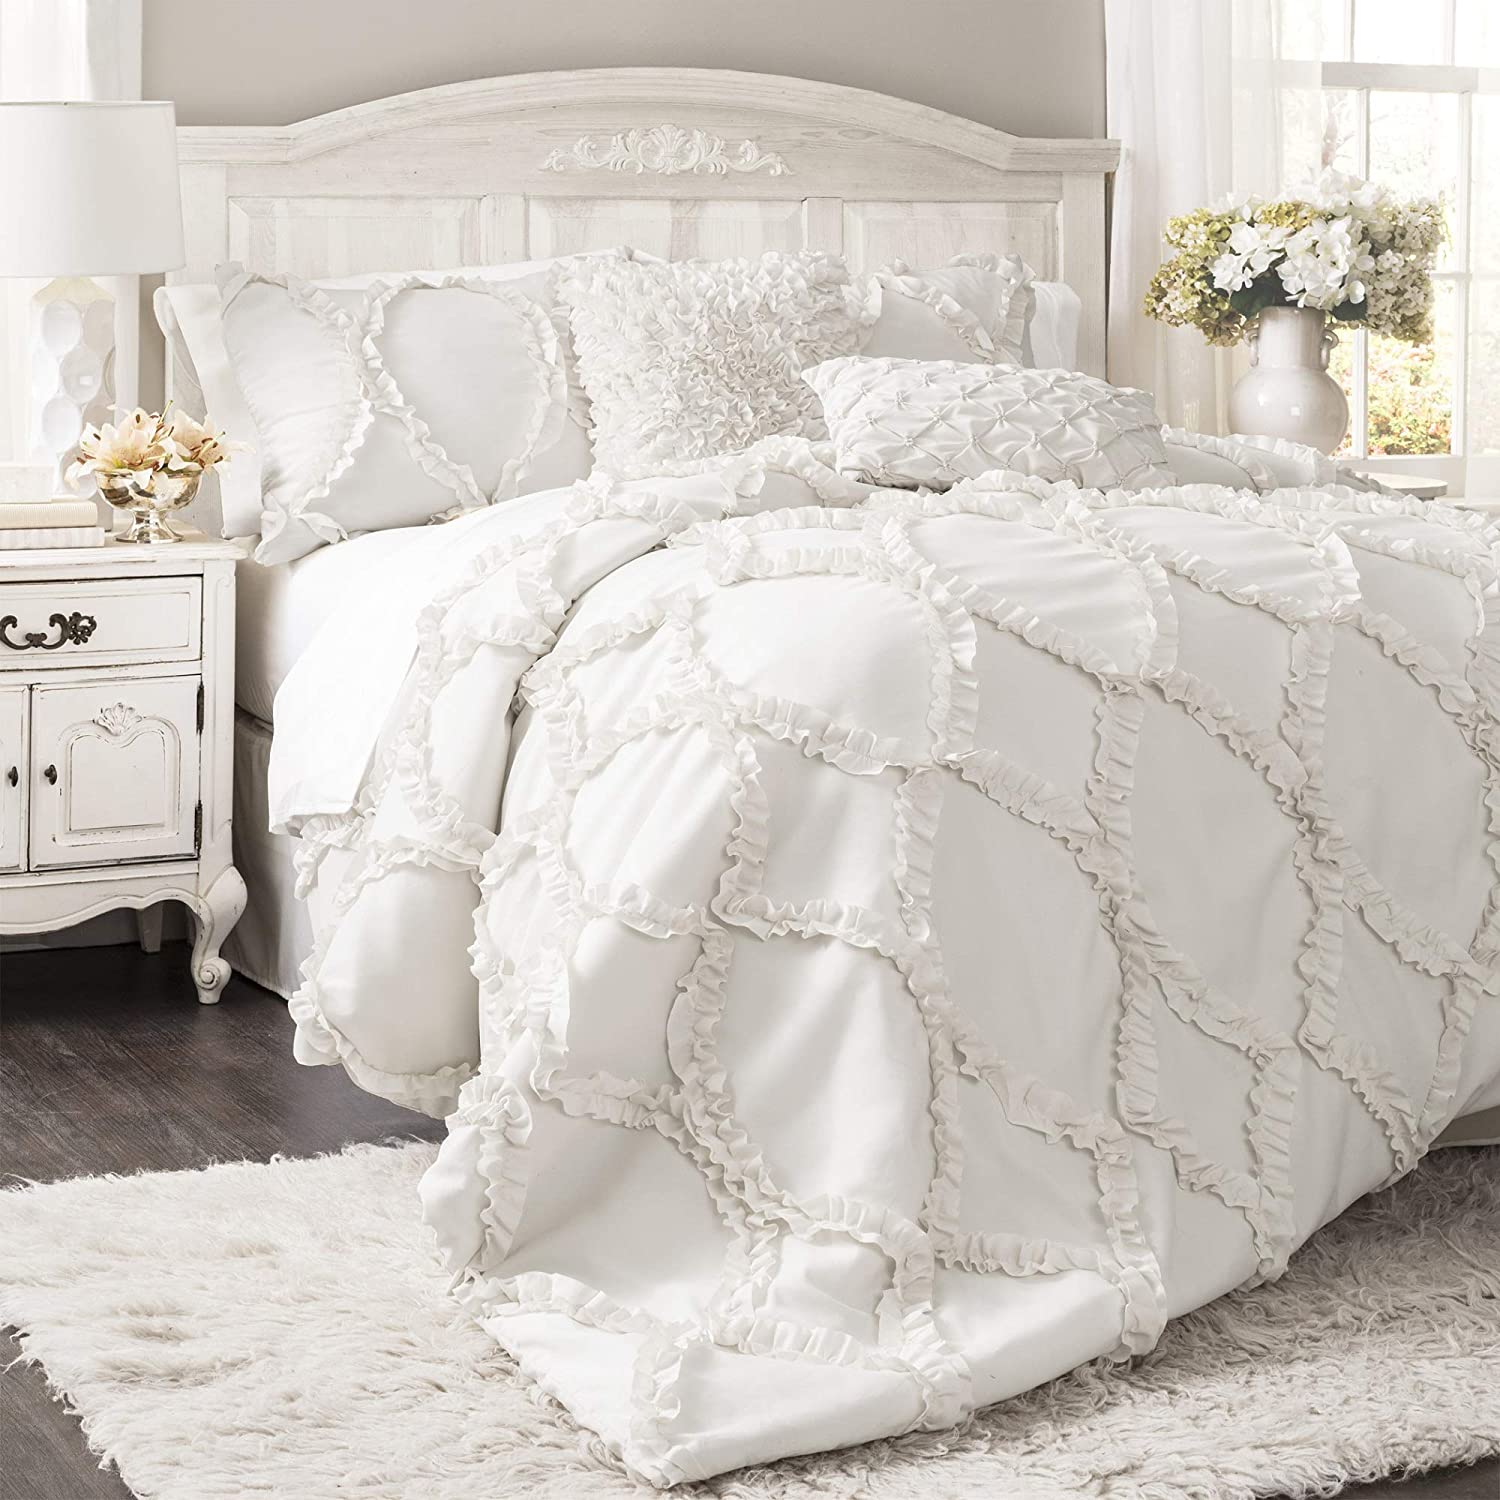 Lush Decor Comforter Ruffled 3 Piece Set with Pillow Shams - Full Queen - White,